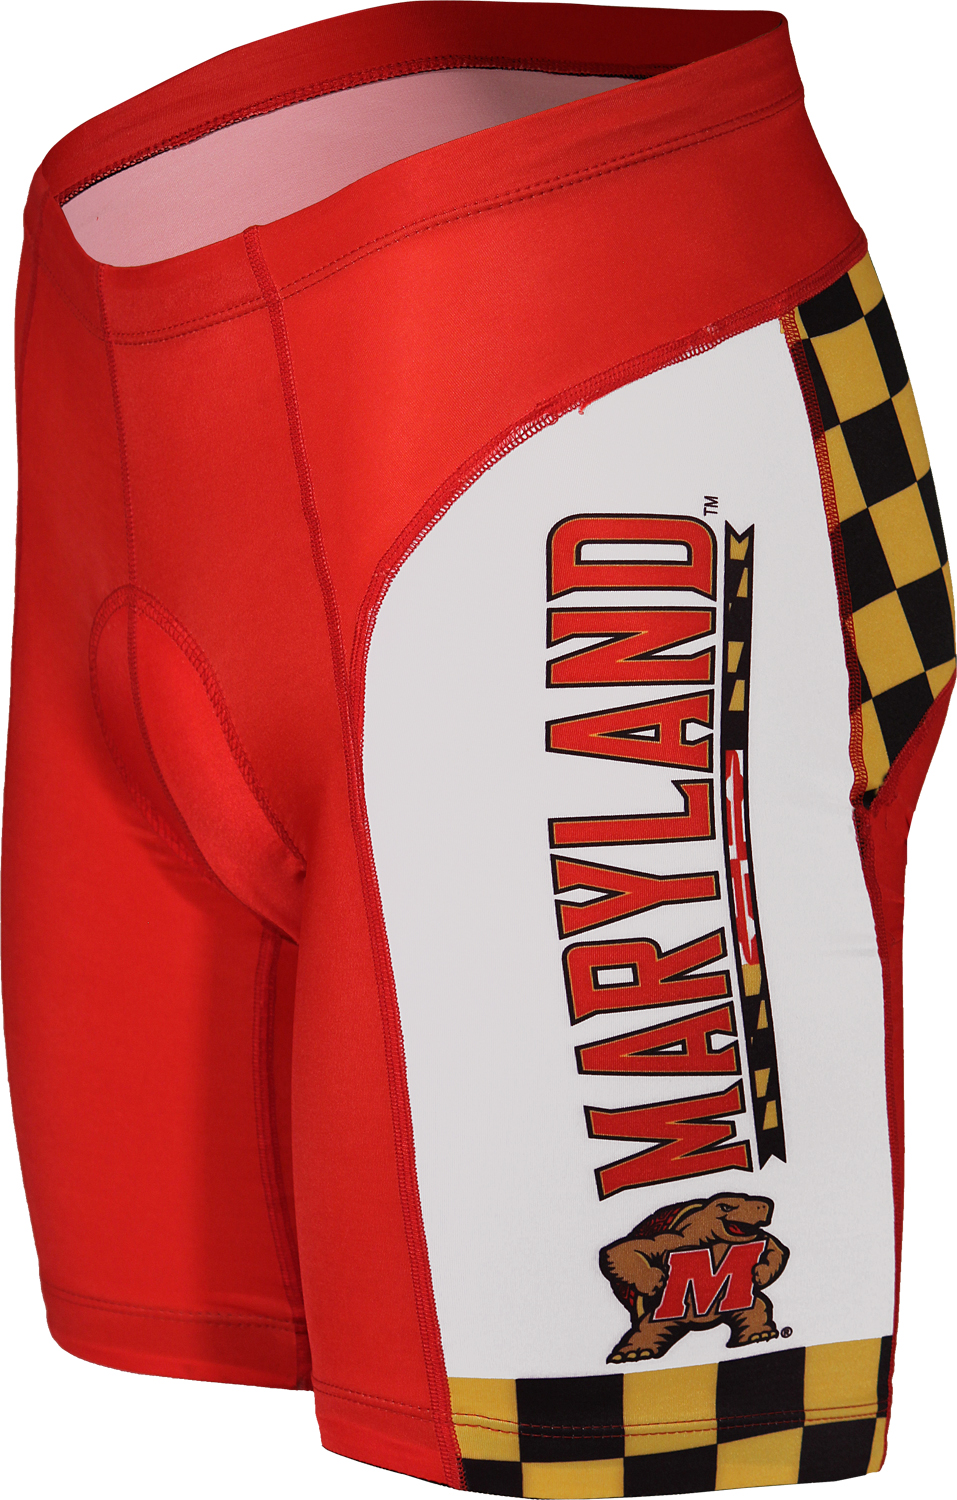 University of Maryland Terrapins Cycling Shorts XL